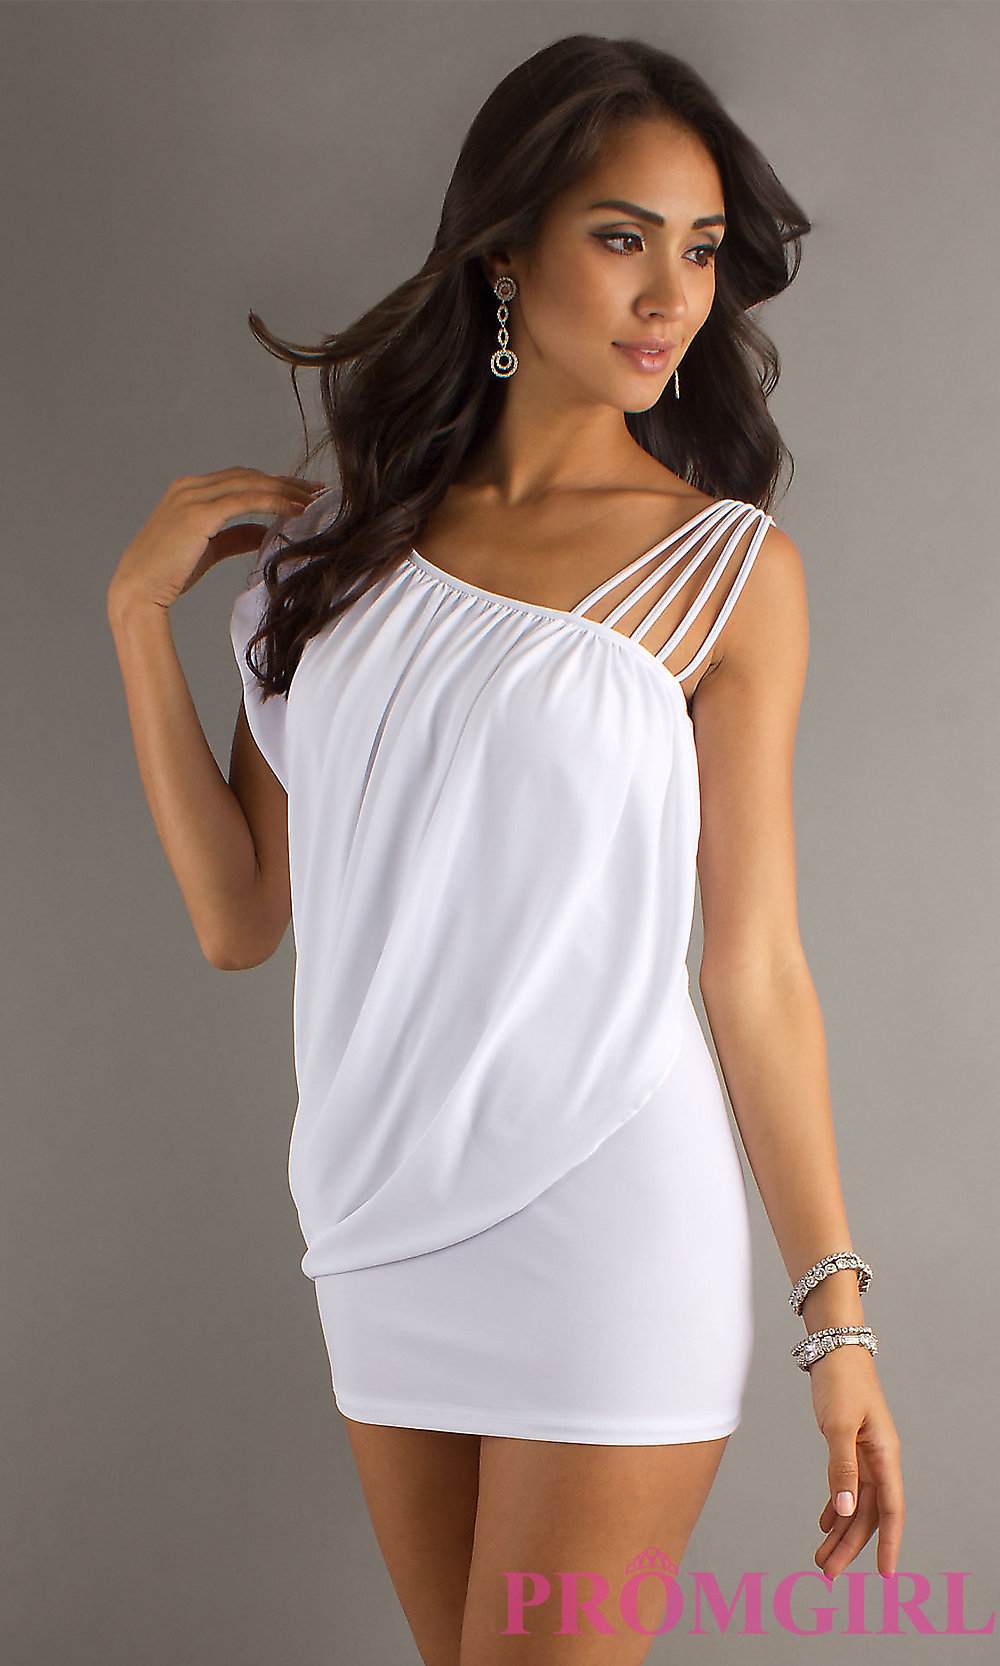 Sexy White Dresses hover to zoom HIJUABG